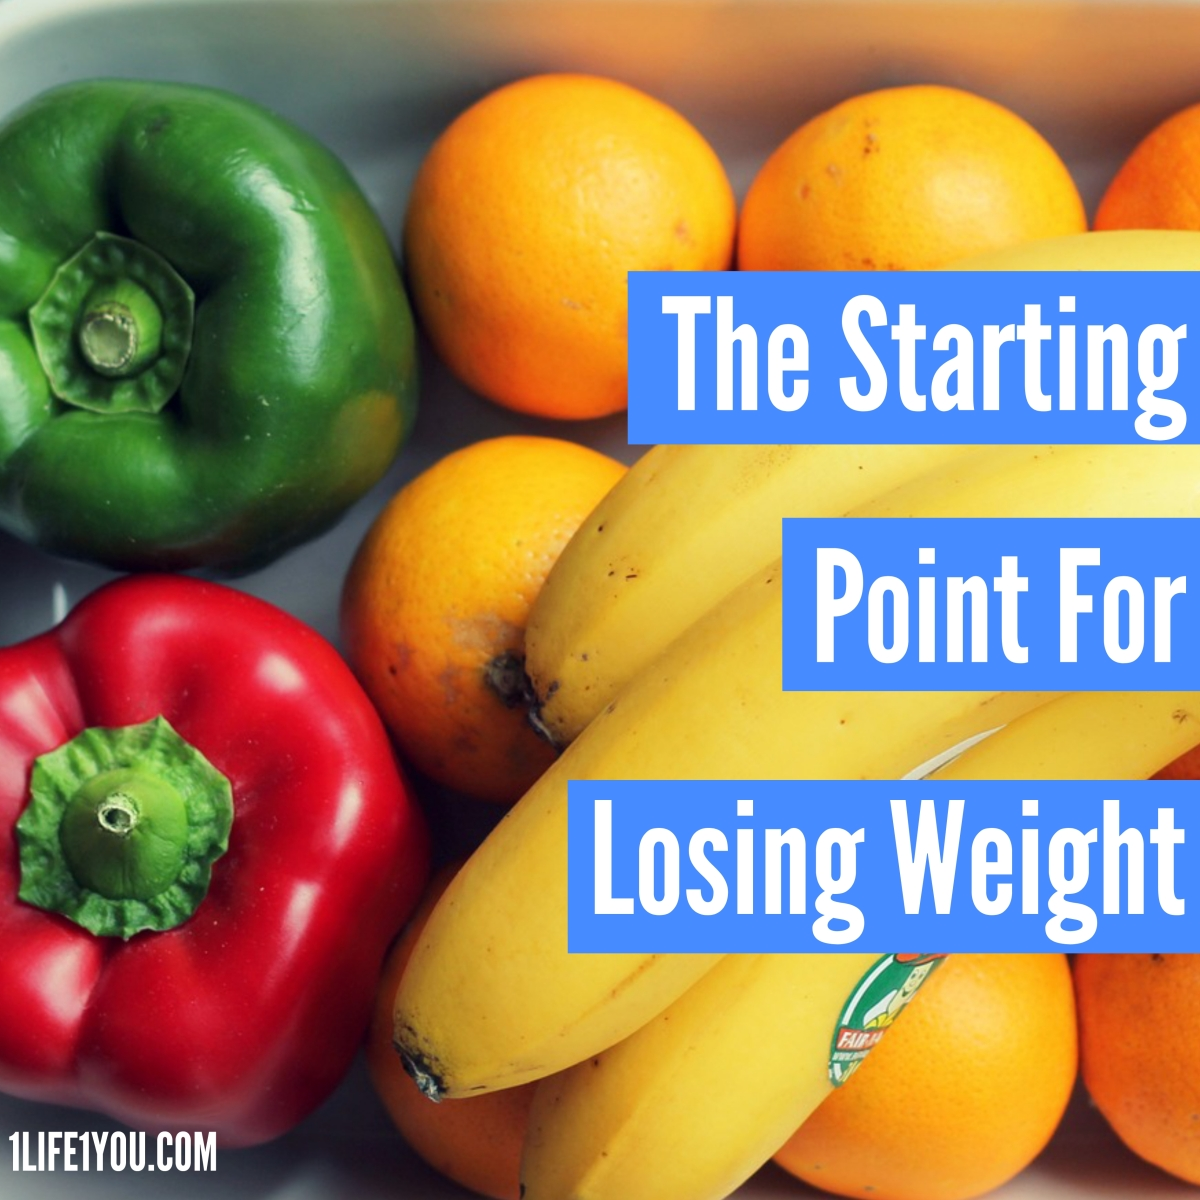 The Starting Point For Losing Weight